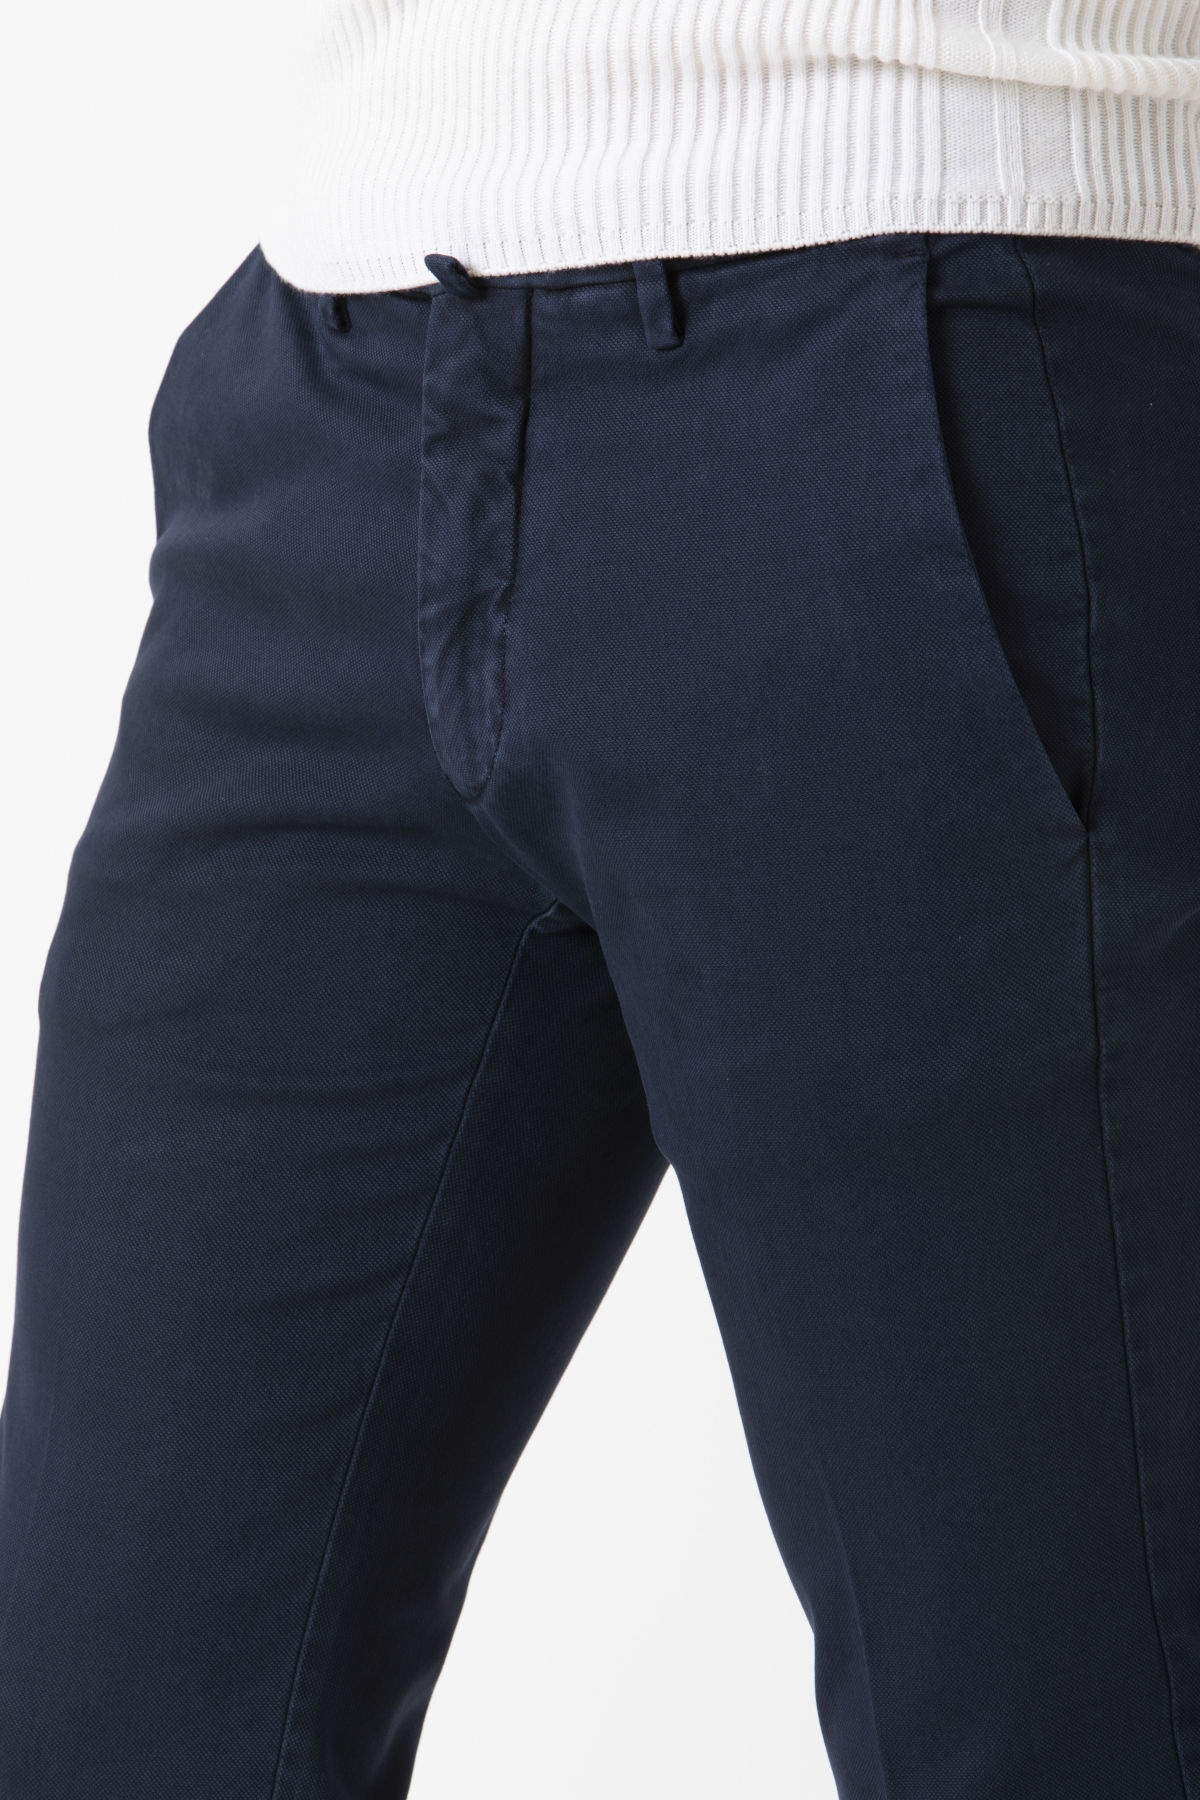 RICKY Trousers for man ENTRE AMIS F/W 19-20